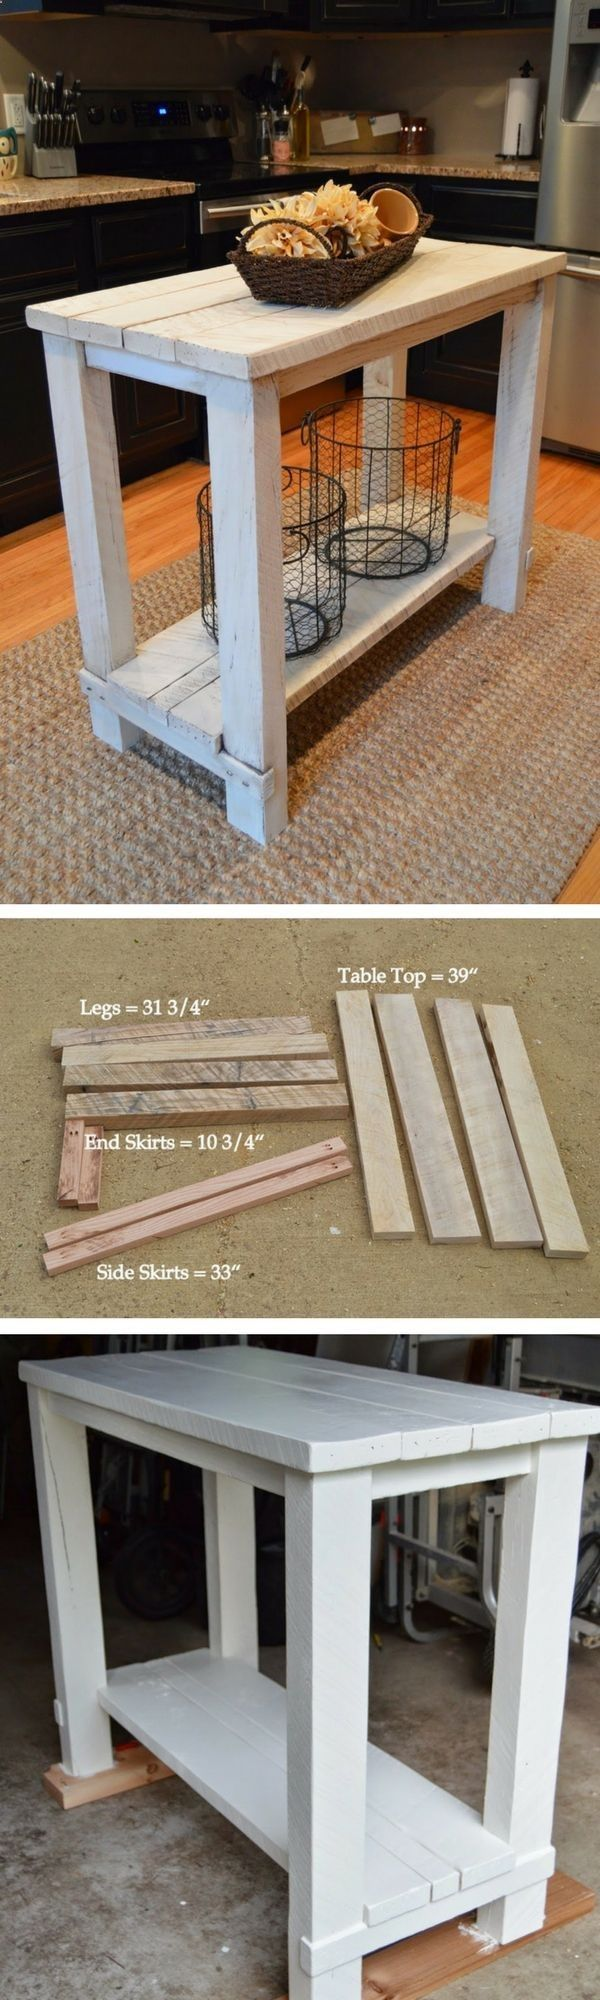 Check out this easy idea on how to build a diy kitchen island from